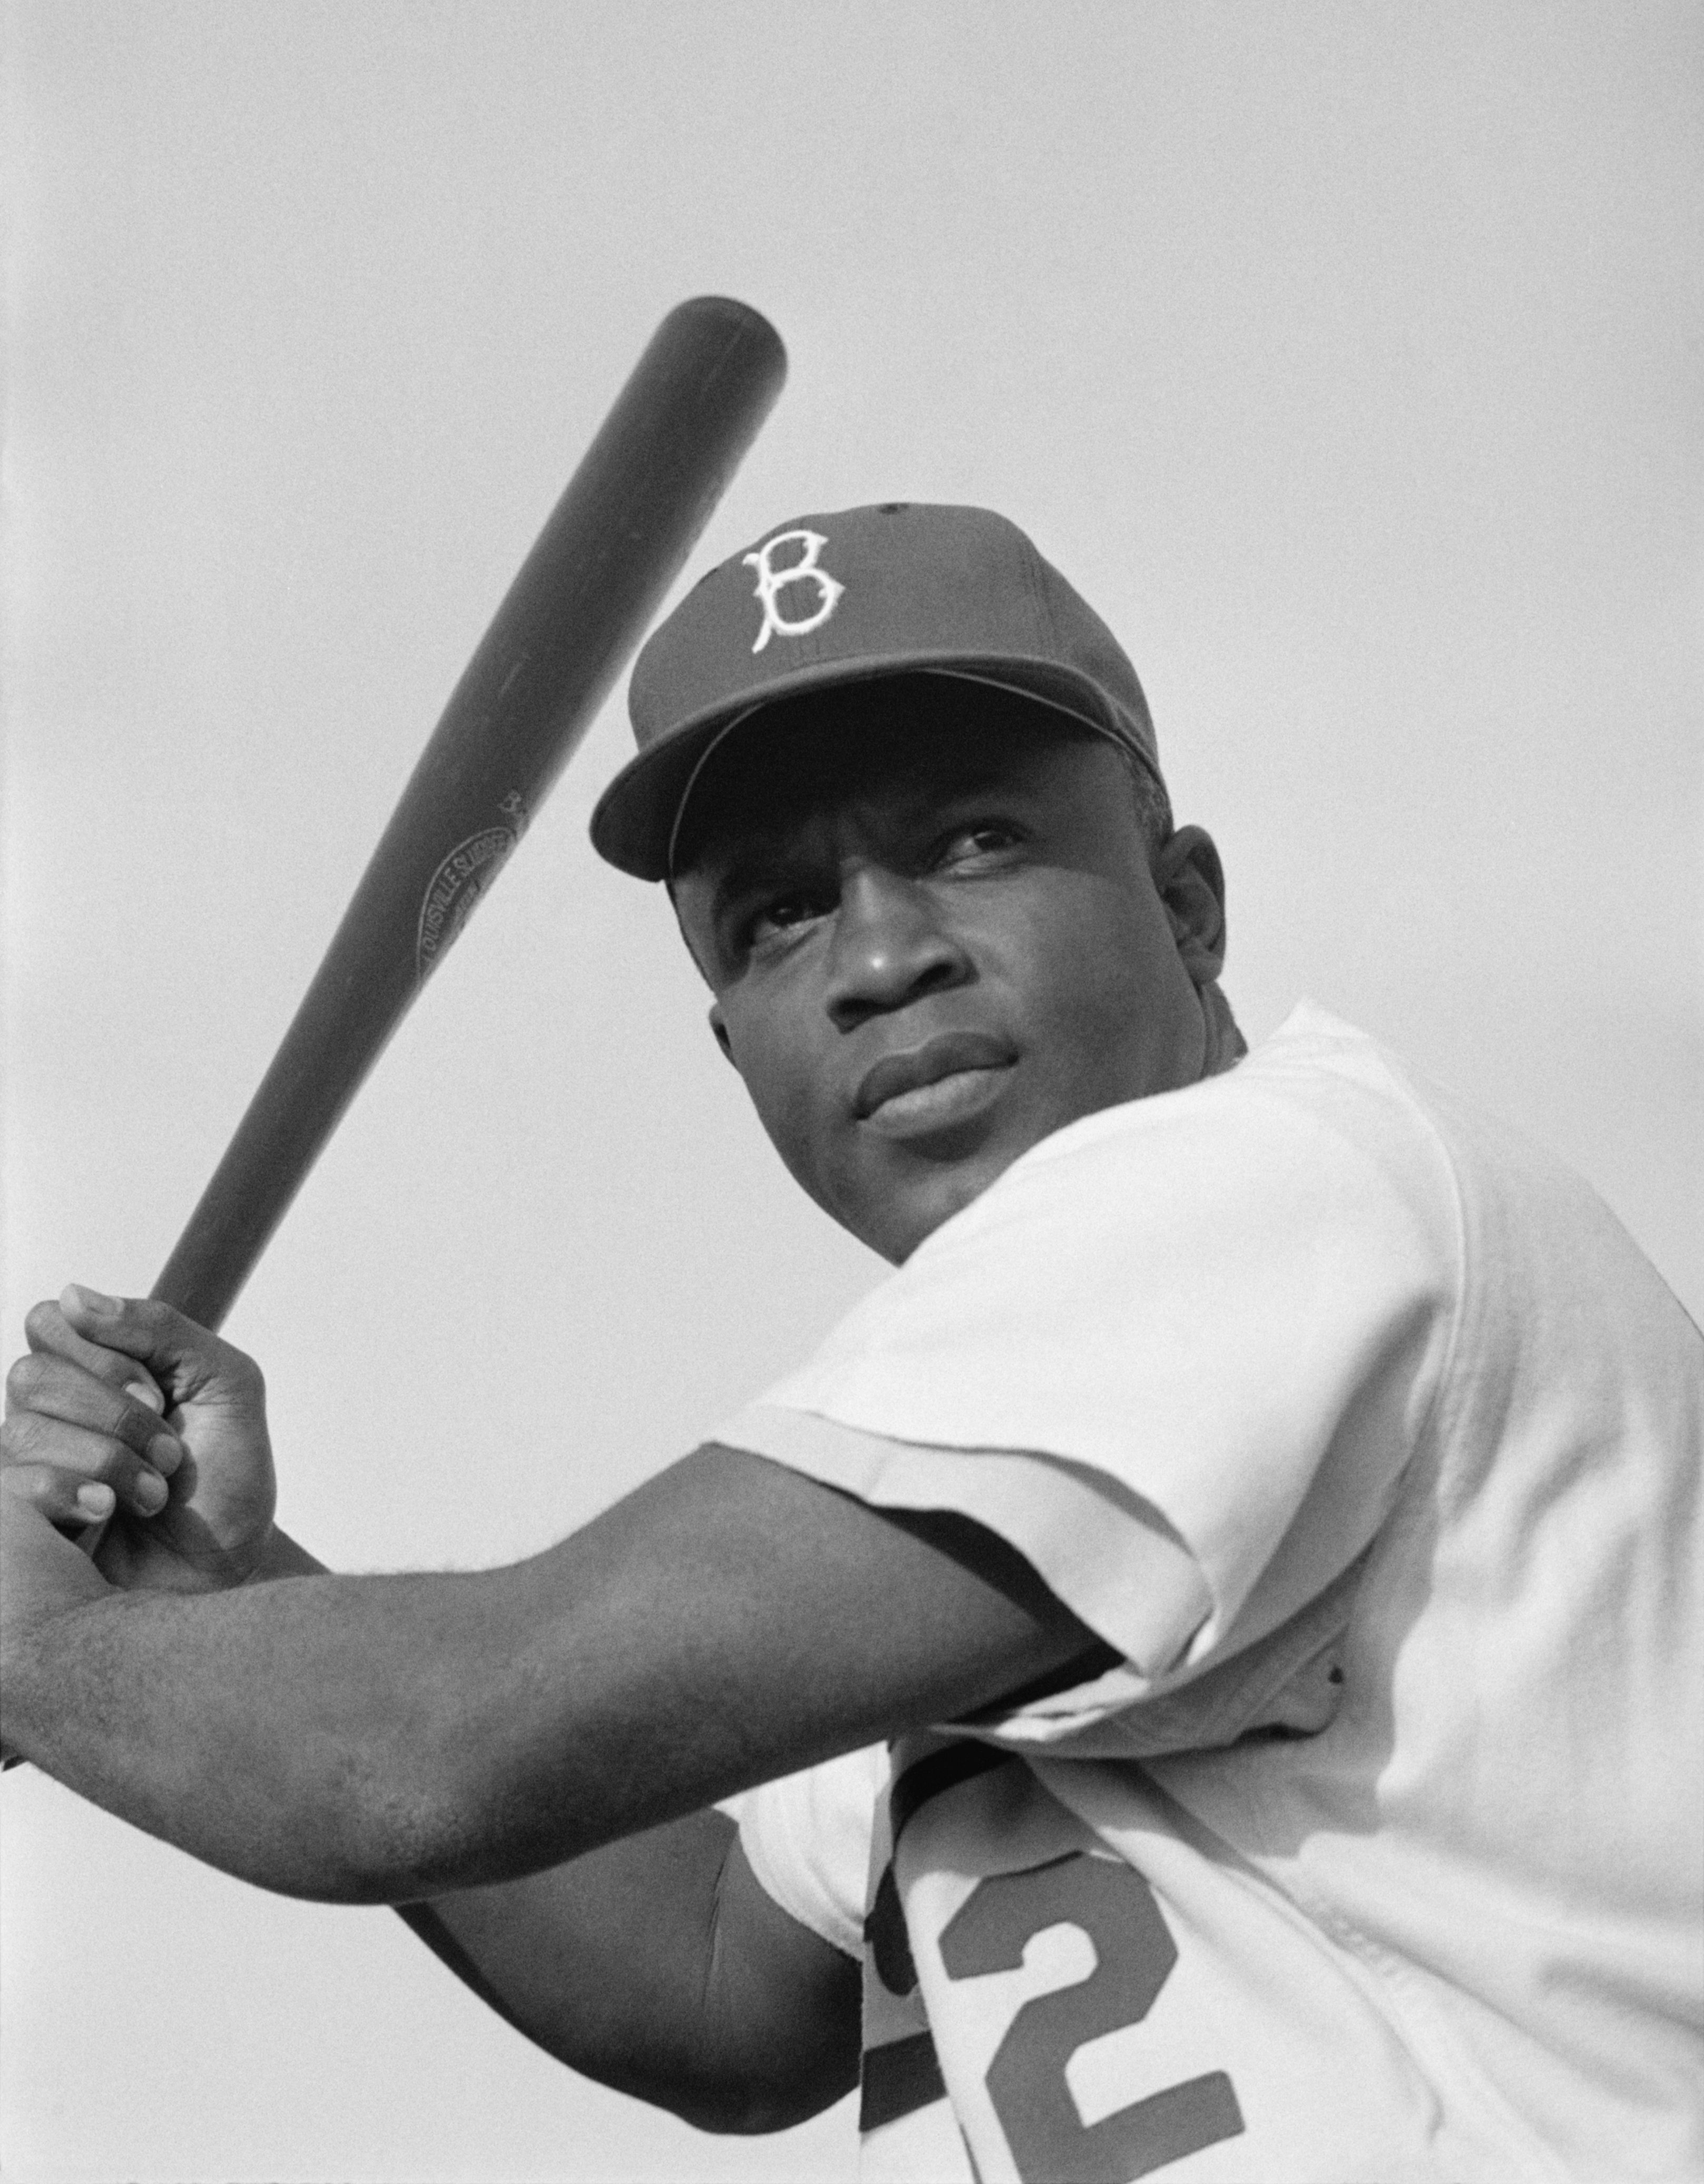 an overview of the color barrier in the history of american baseball Jackie robinson's life and legacy will be remembered as one of the most important in american history in 1997, the world celebrated the 50th anniversary of jackie's breaking major league baseball's color barrier.